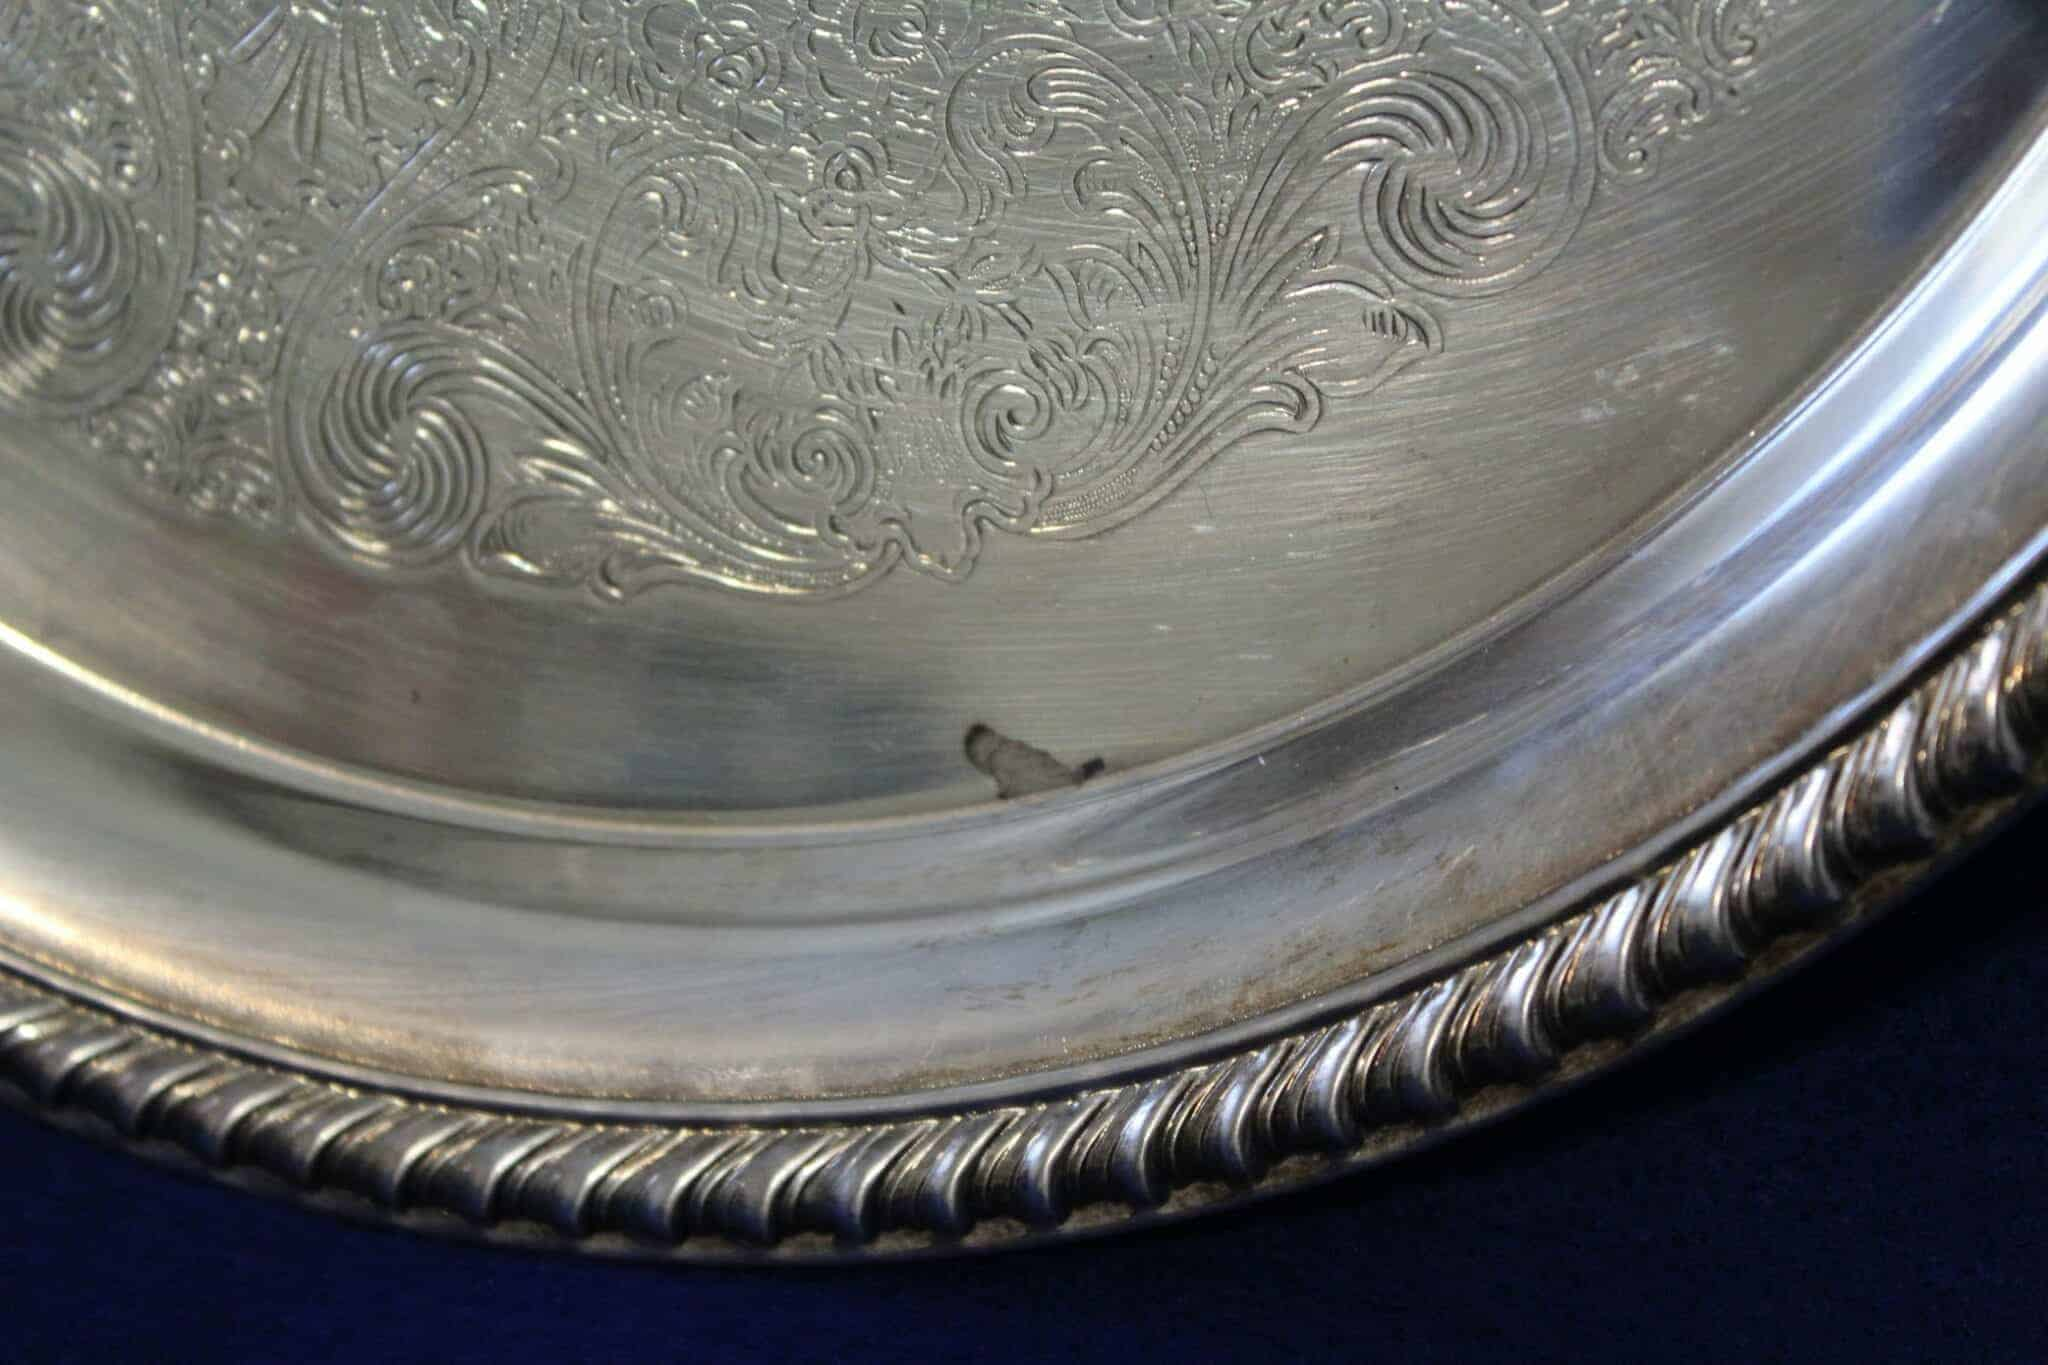 Tray, Silver plate, Holloware Pattern 871, International Silver